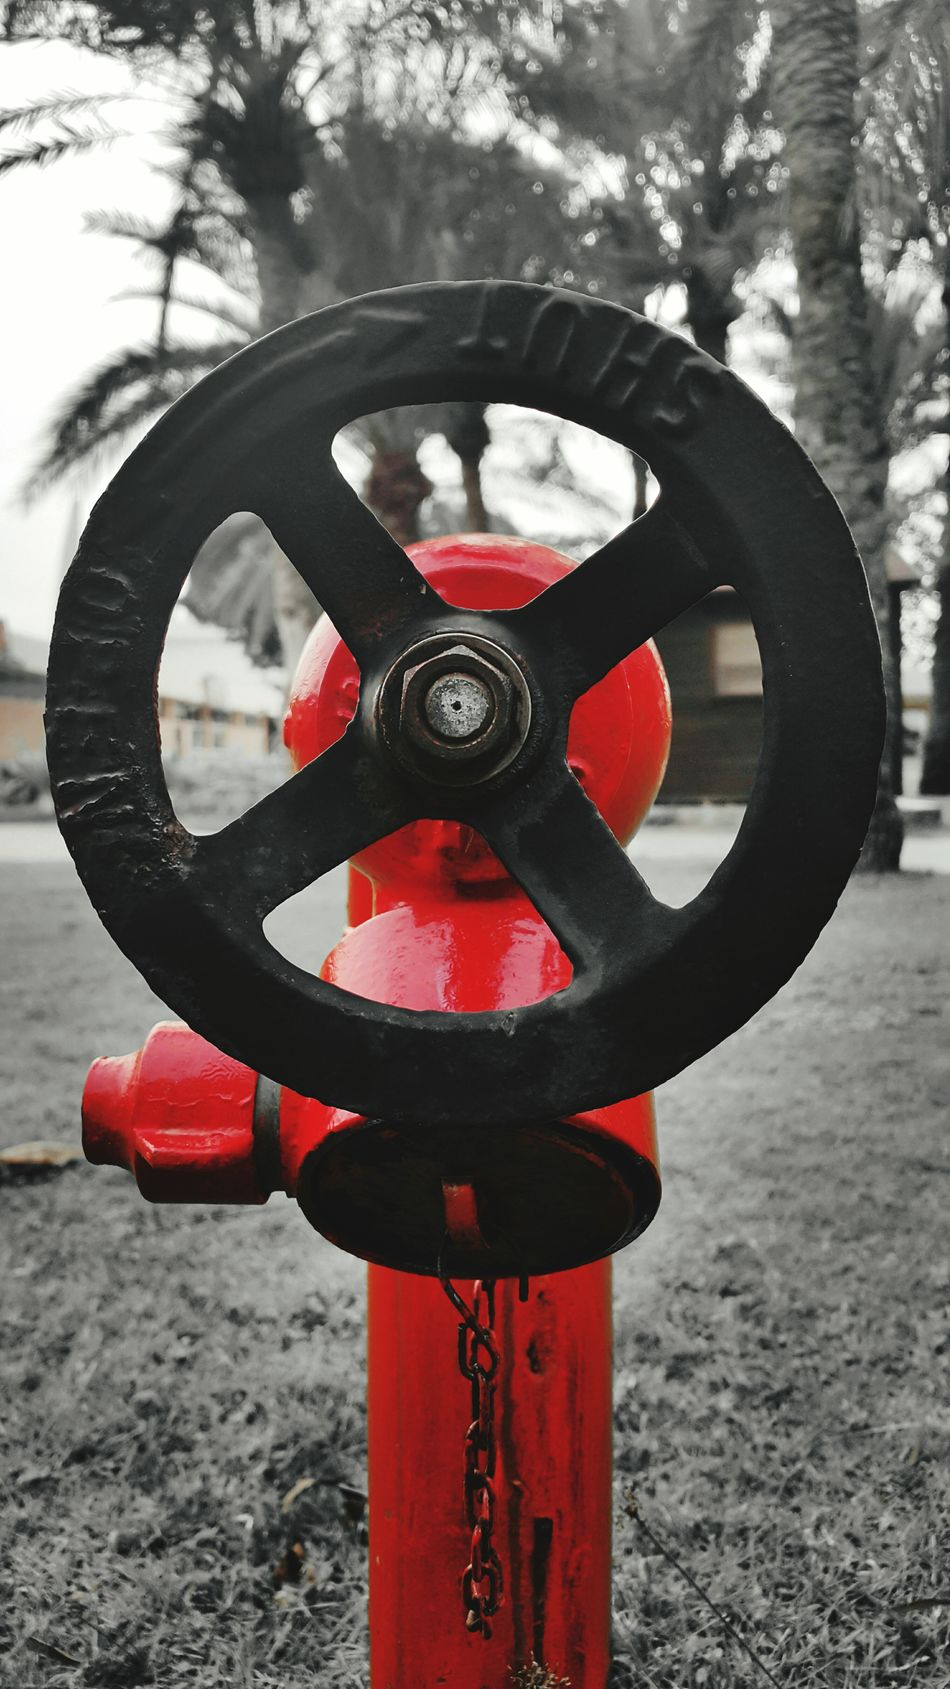 For the love of red! Red Equipment Fire Hydrant No People Note4photography Outdoors